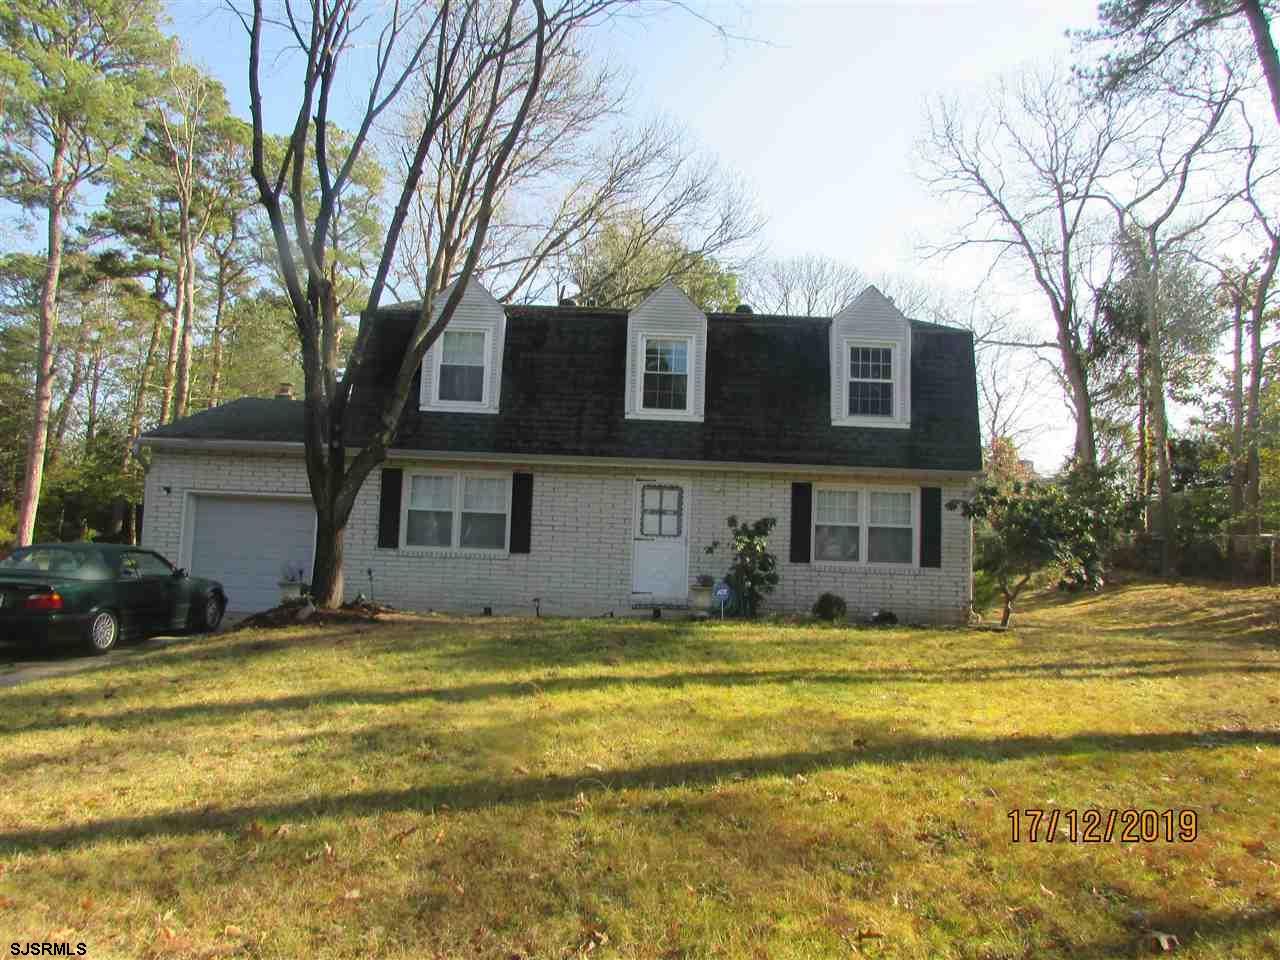 Absecon Shores Colonial on large lot. 2000 sq ft of living space,, hardwood floors in LR & DR, Sunny